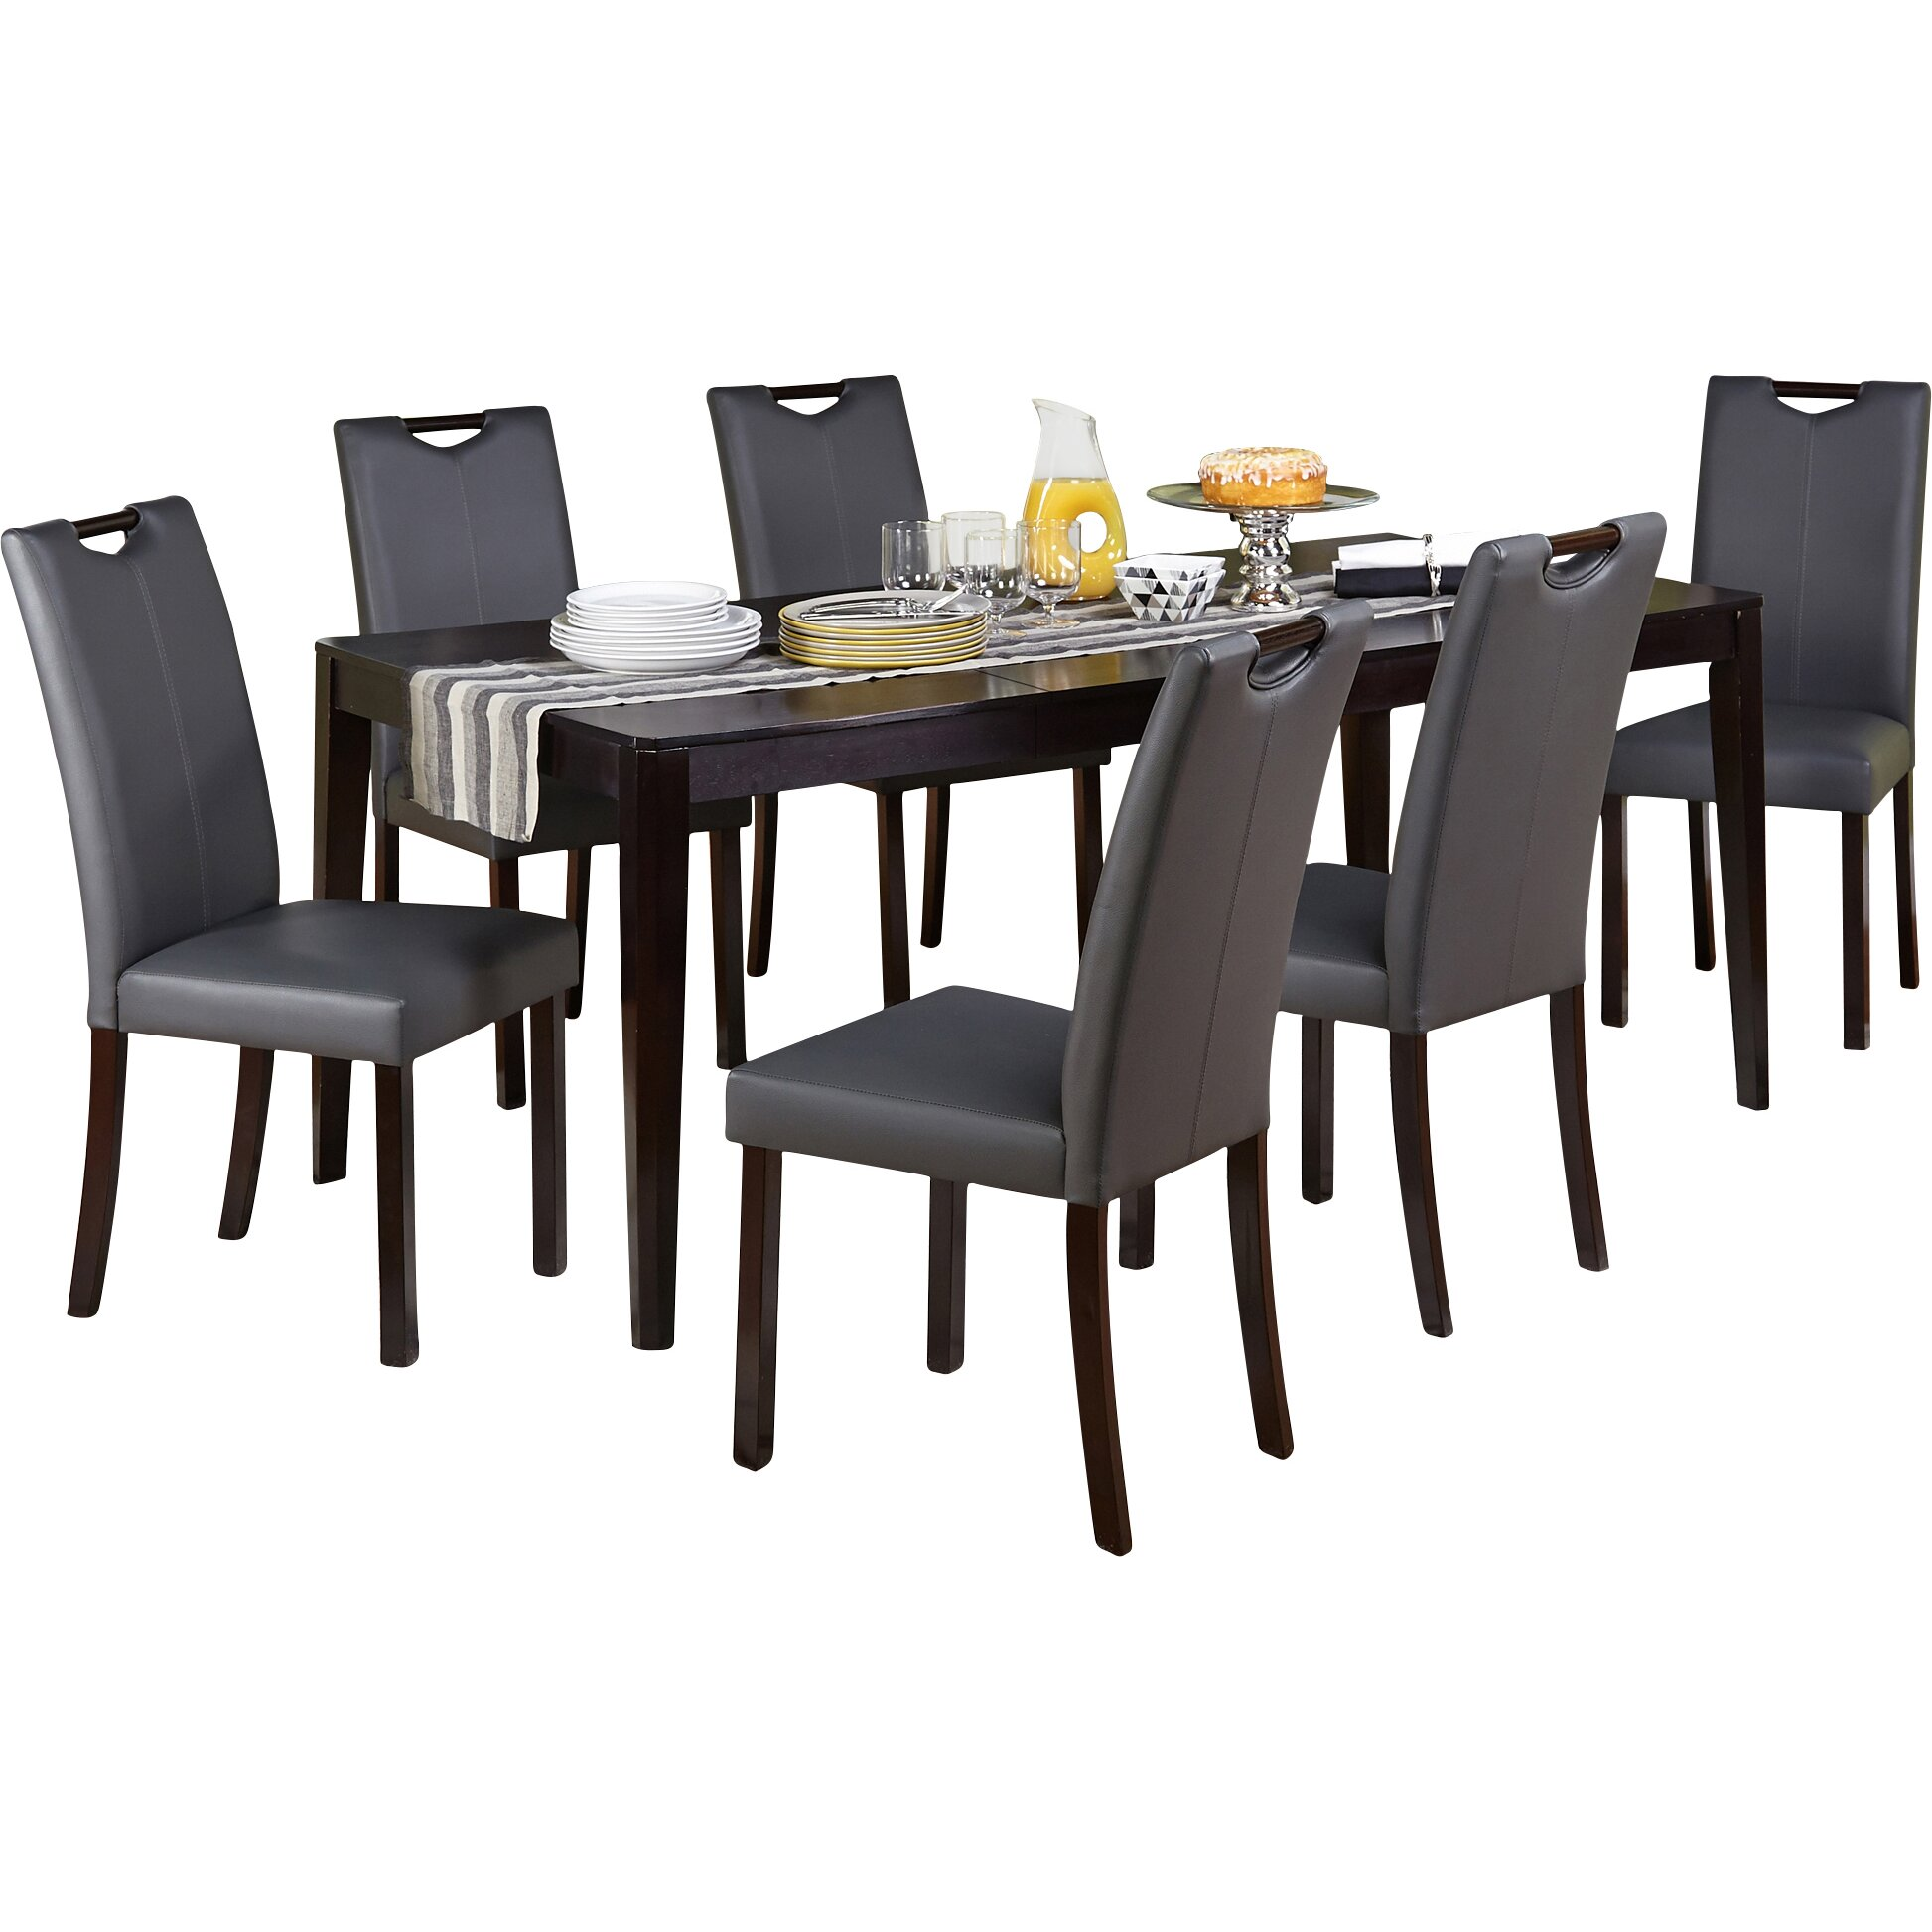 Superb img of TMS Tilo 7 Piece Dining Set & Reviews Wayfair with #B58C16 color and 1946x1946 pixels